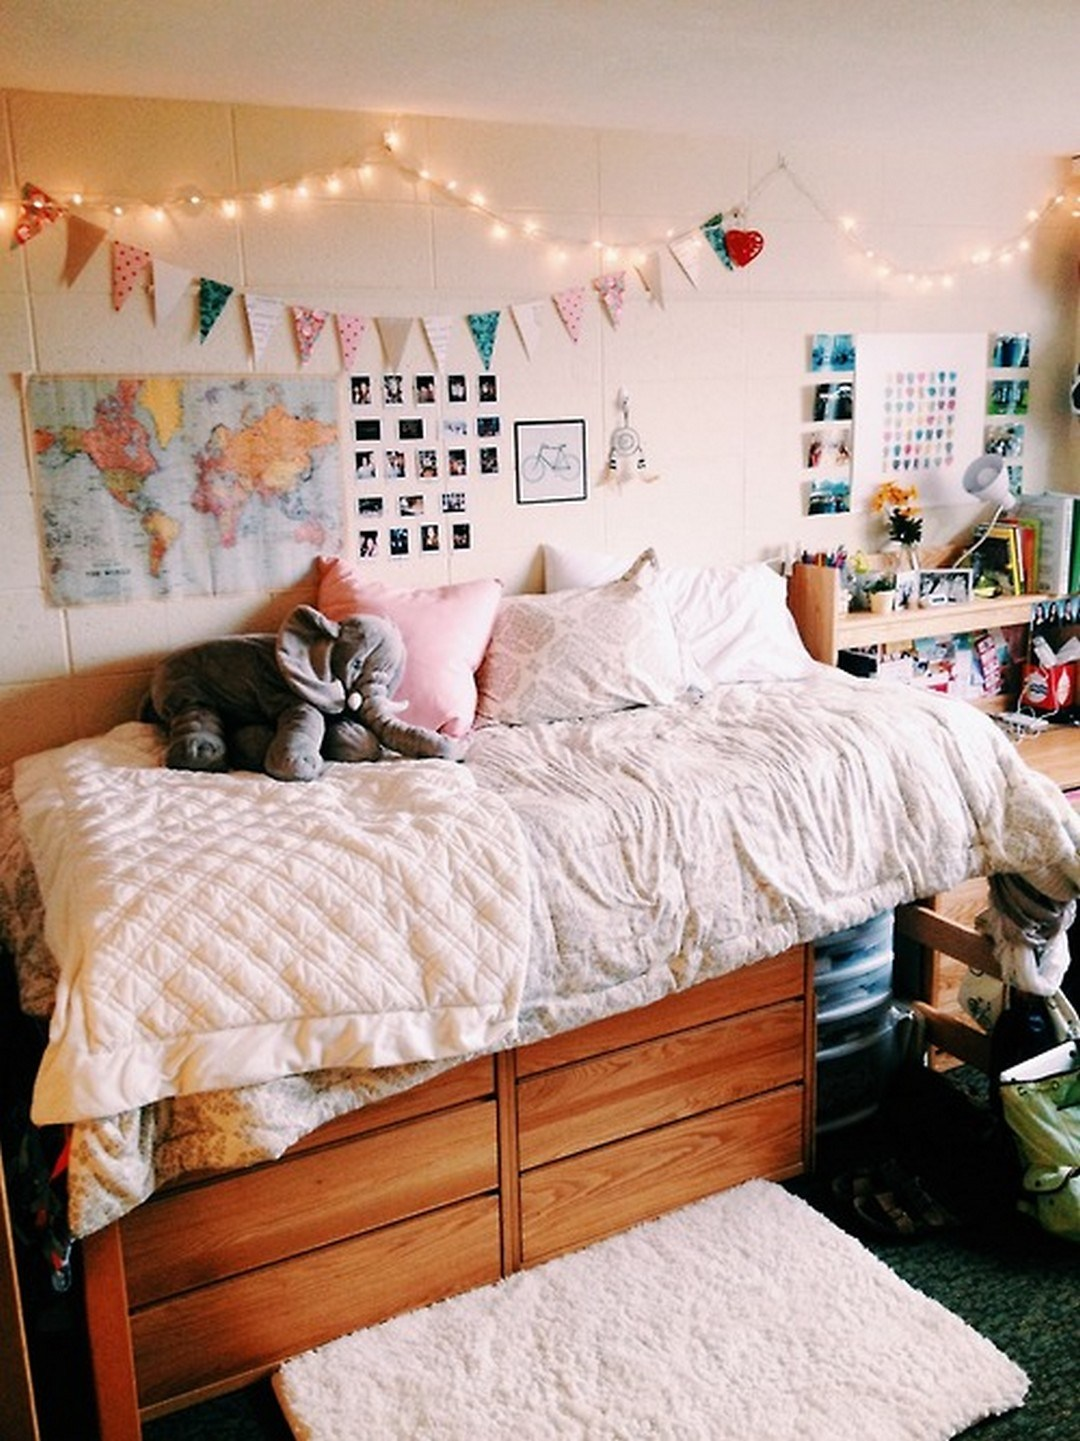 17+ Ways To Decorate Bedroom